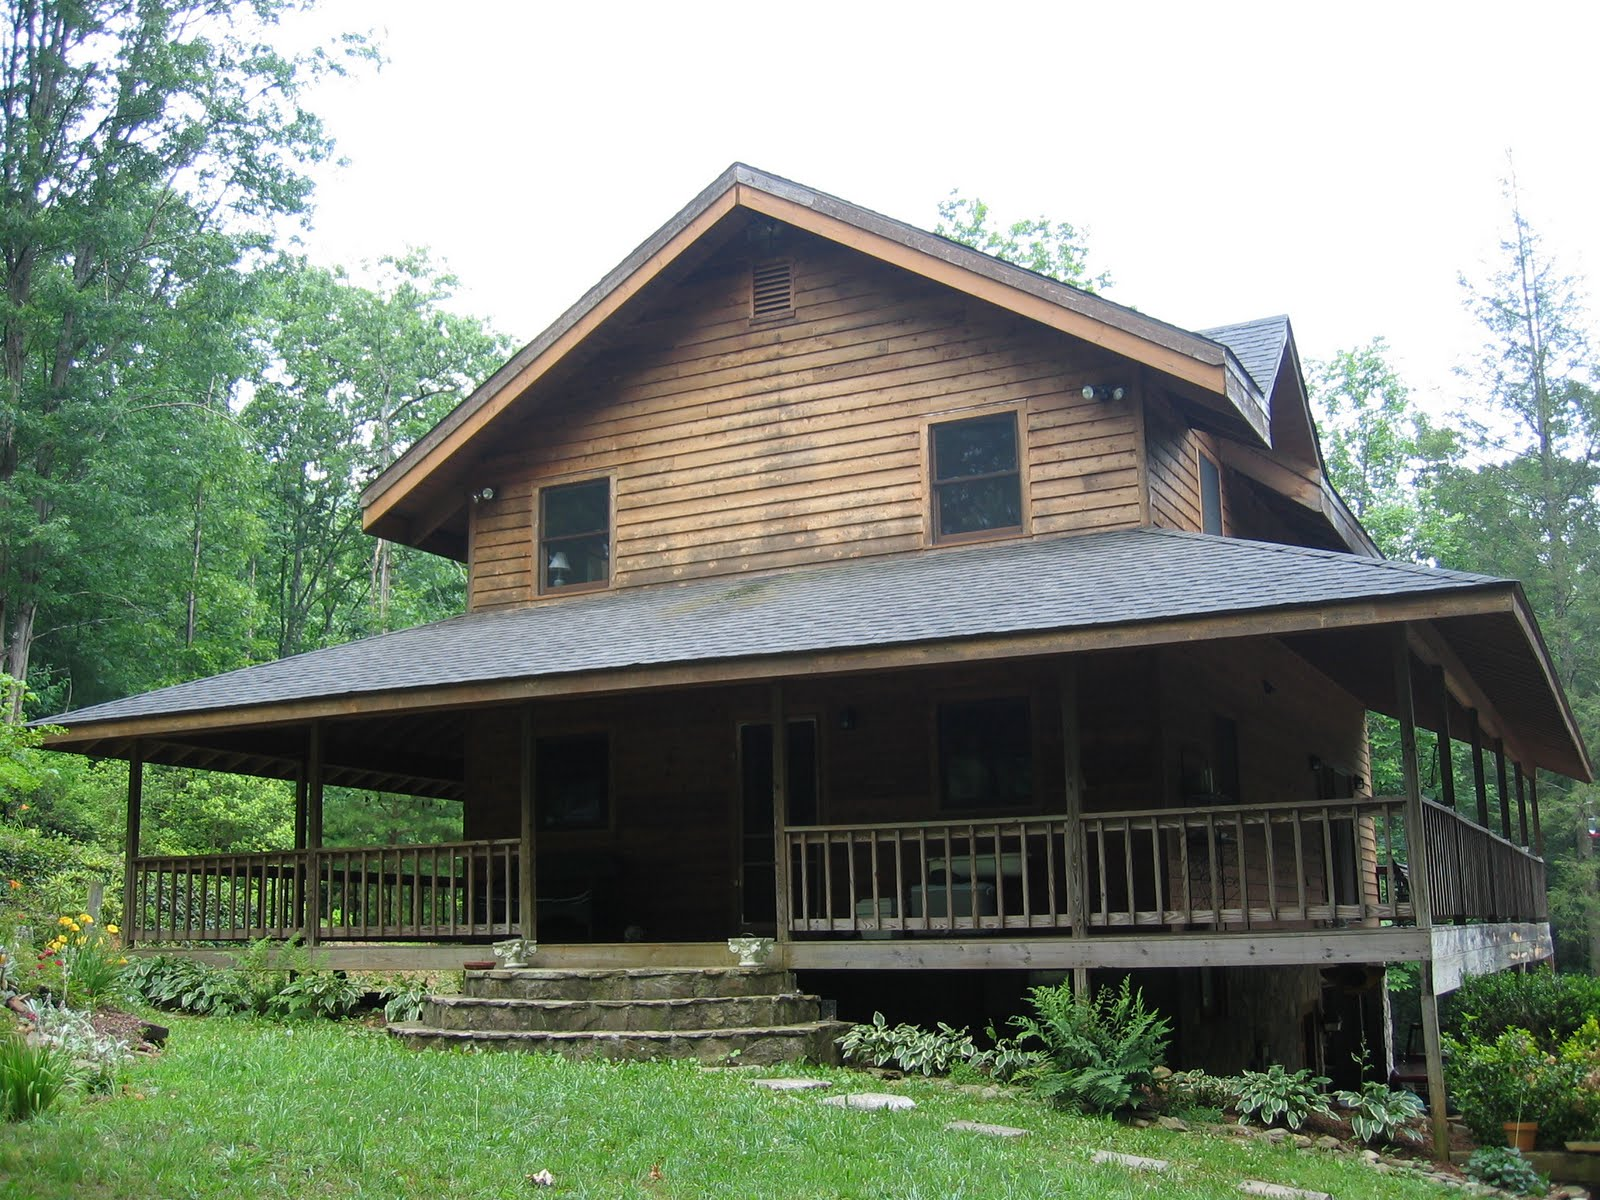 Tate city ga cabin for sale in tate city georgia for Cabin with wrap around porch